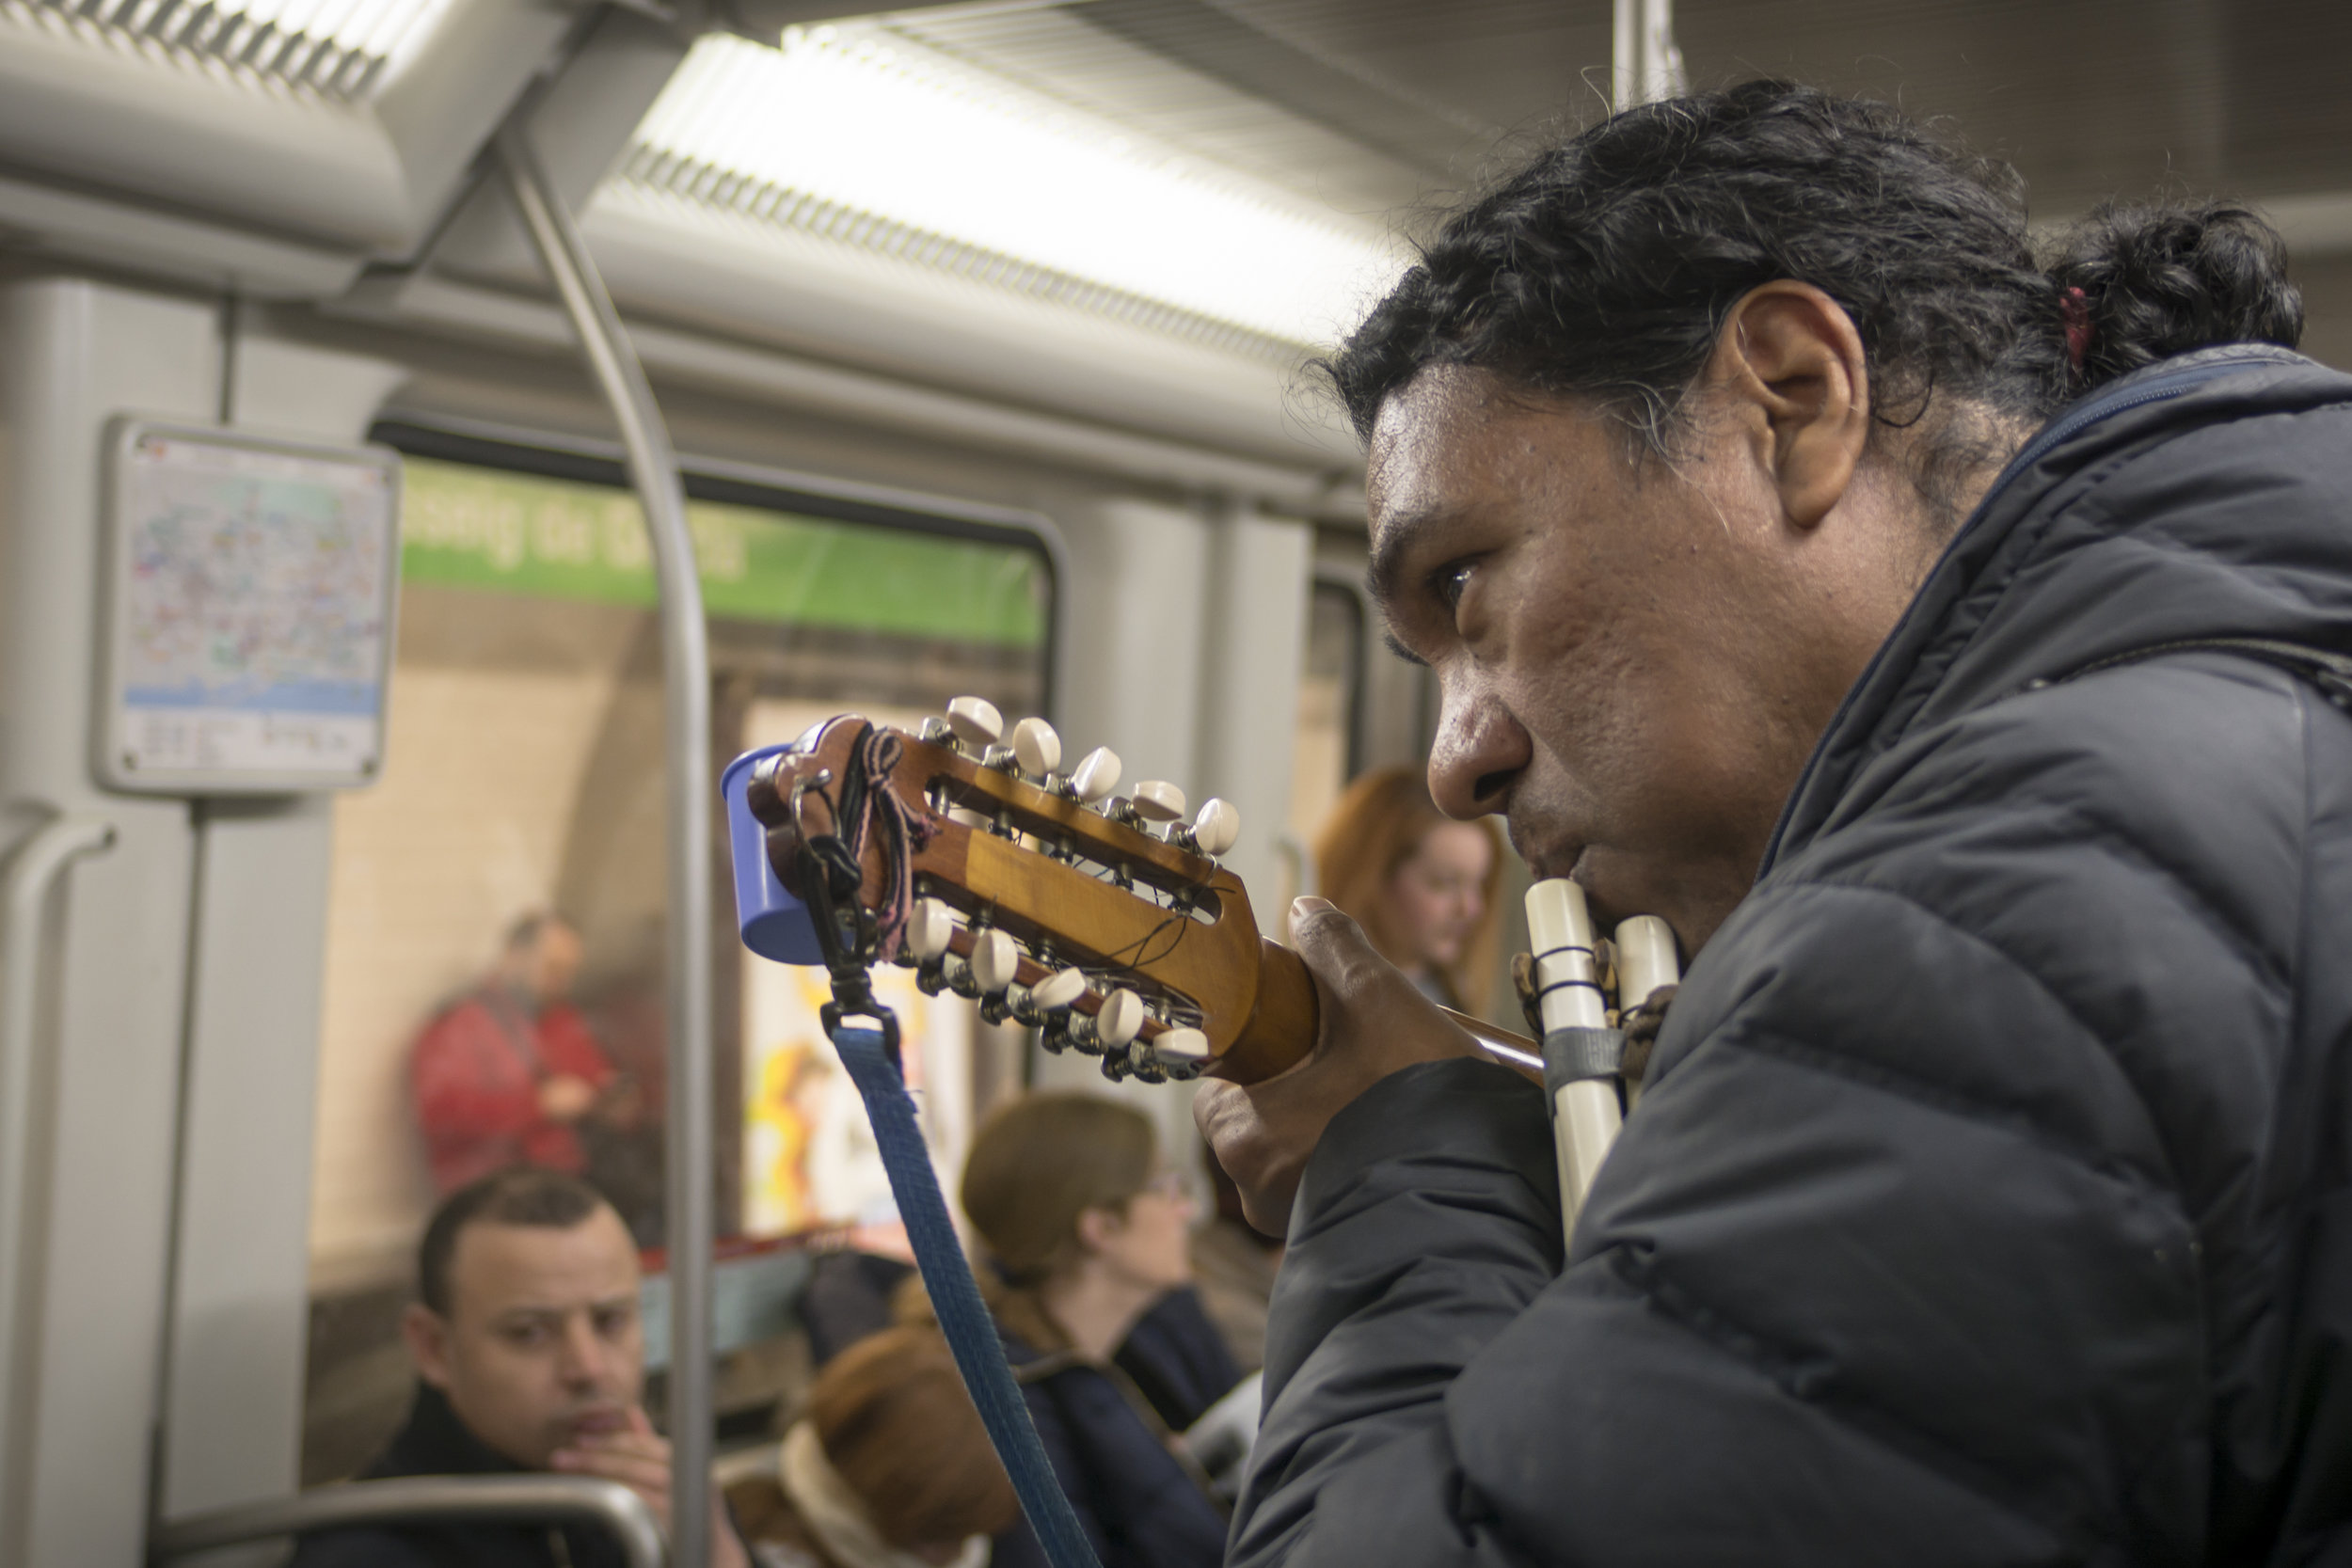 """I see this guy busking on the Barcelona metro quite often and it's always a highlight. He reminds me that """"enough"""" can simply look like contentedness doing something you love — like playing music."""